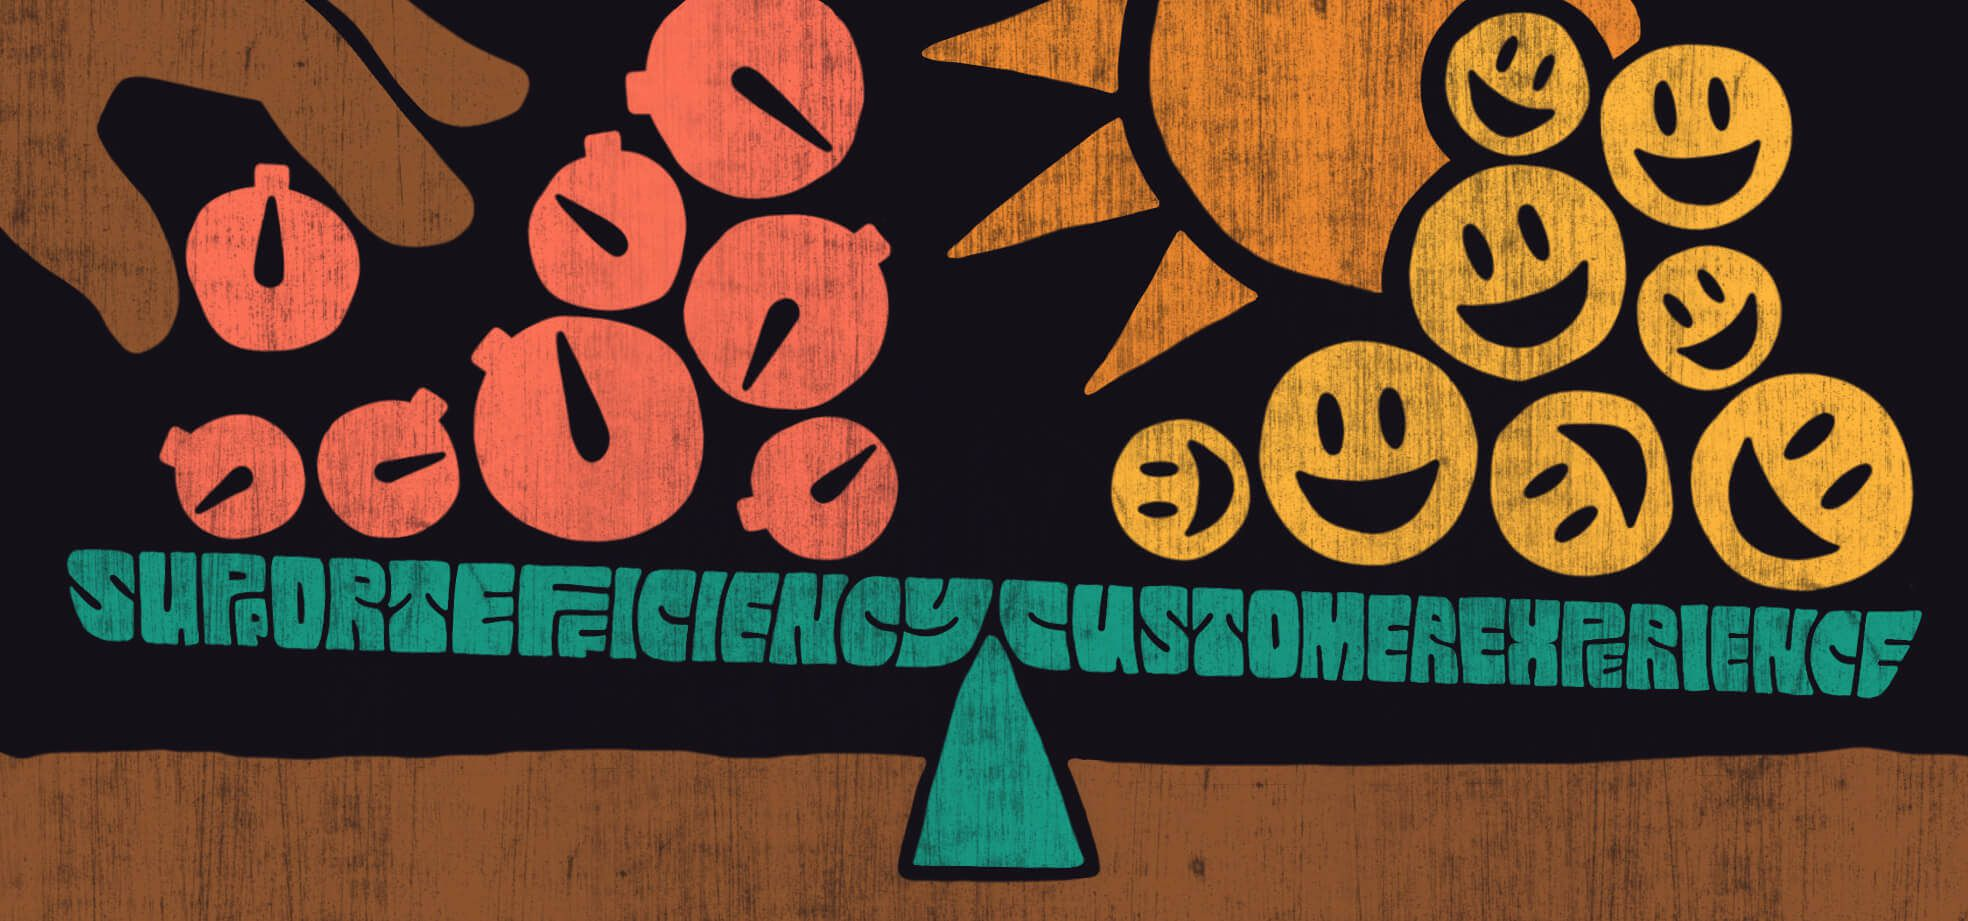 Balancing support efficiency with a great customer experience